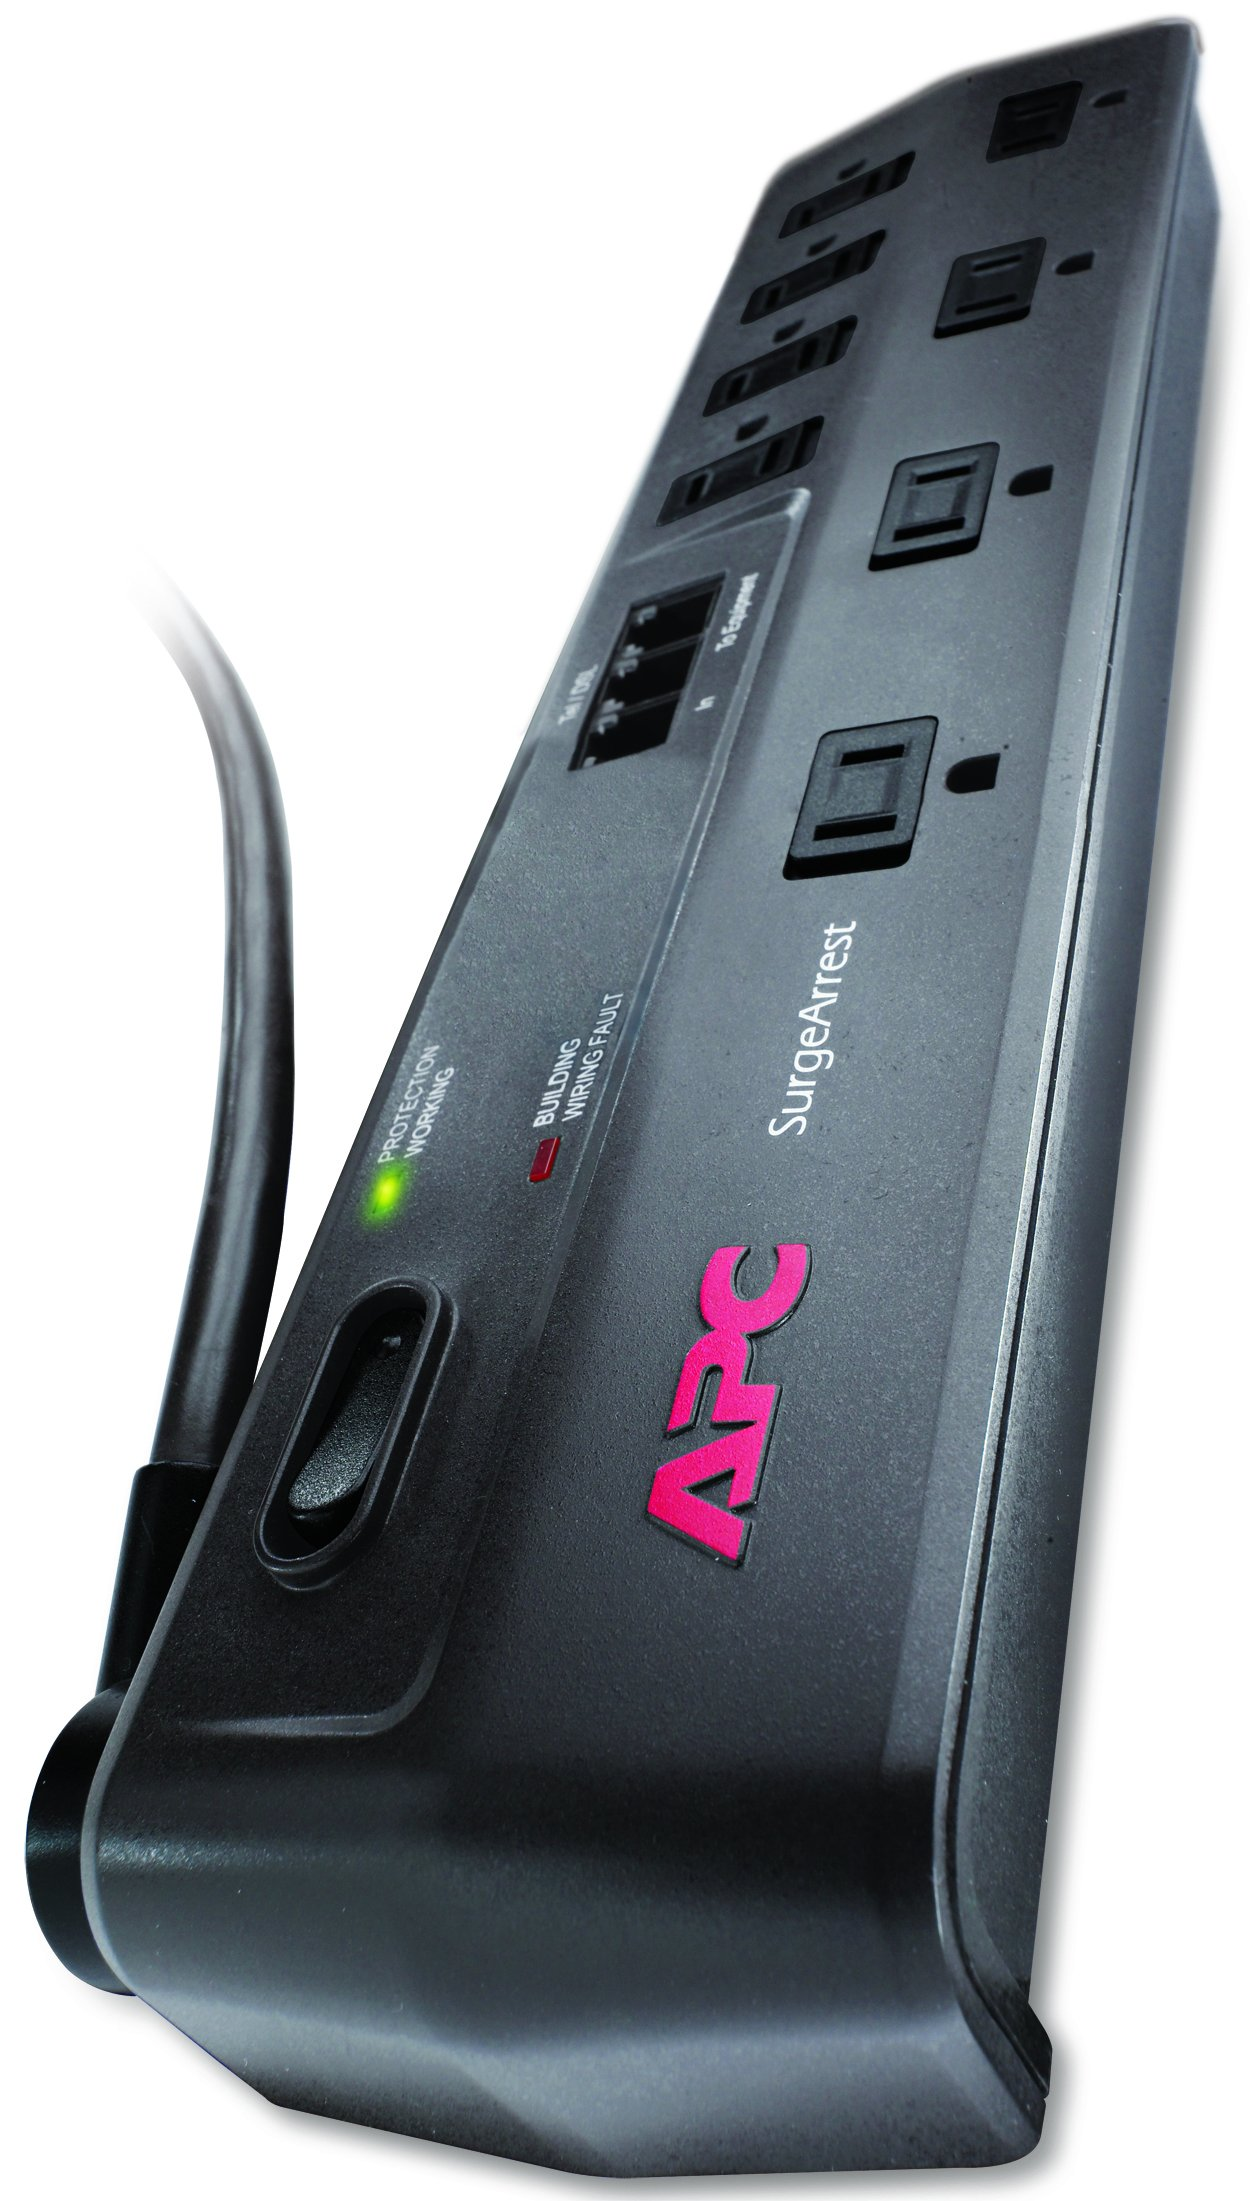 Apc Outlet Surge Protector With Telephone  Dsl And Coaxial Protection